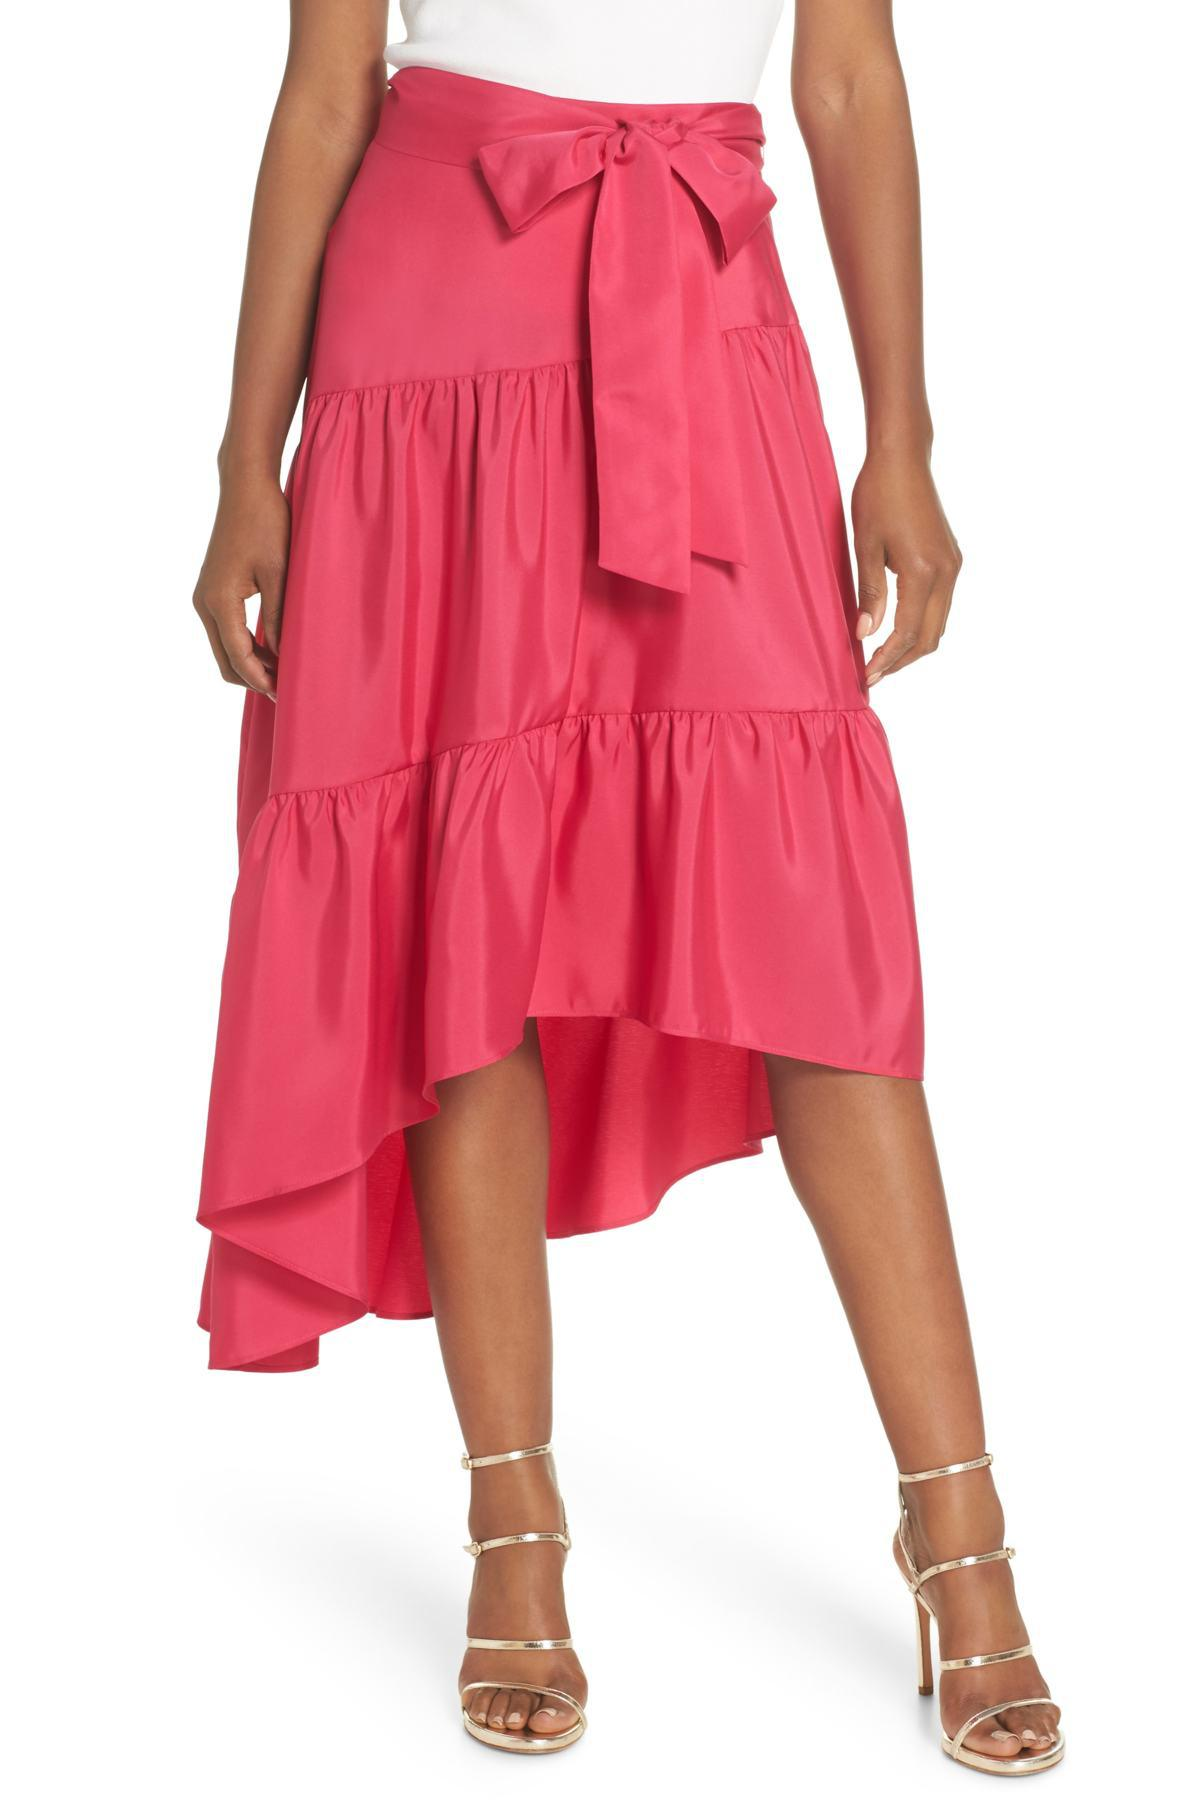 2ad3df9a511 Lyst - Eliza J Tiered High low Skirt in Pink - Save 81%